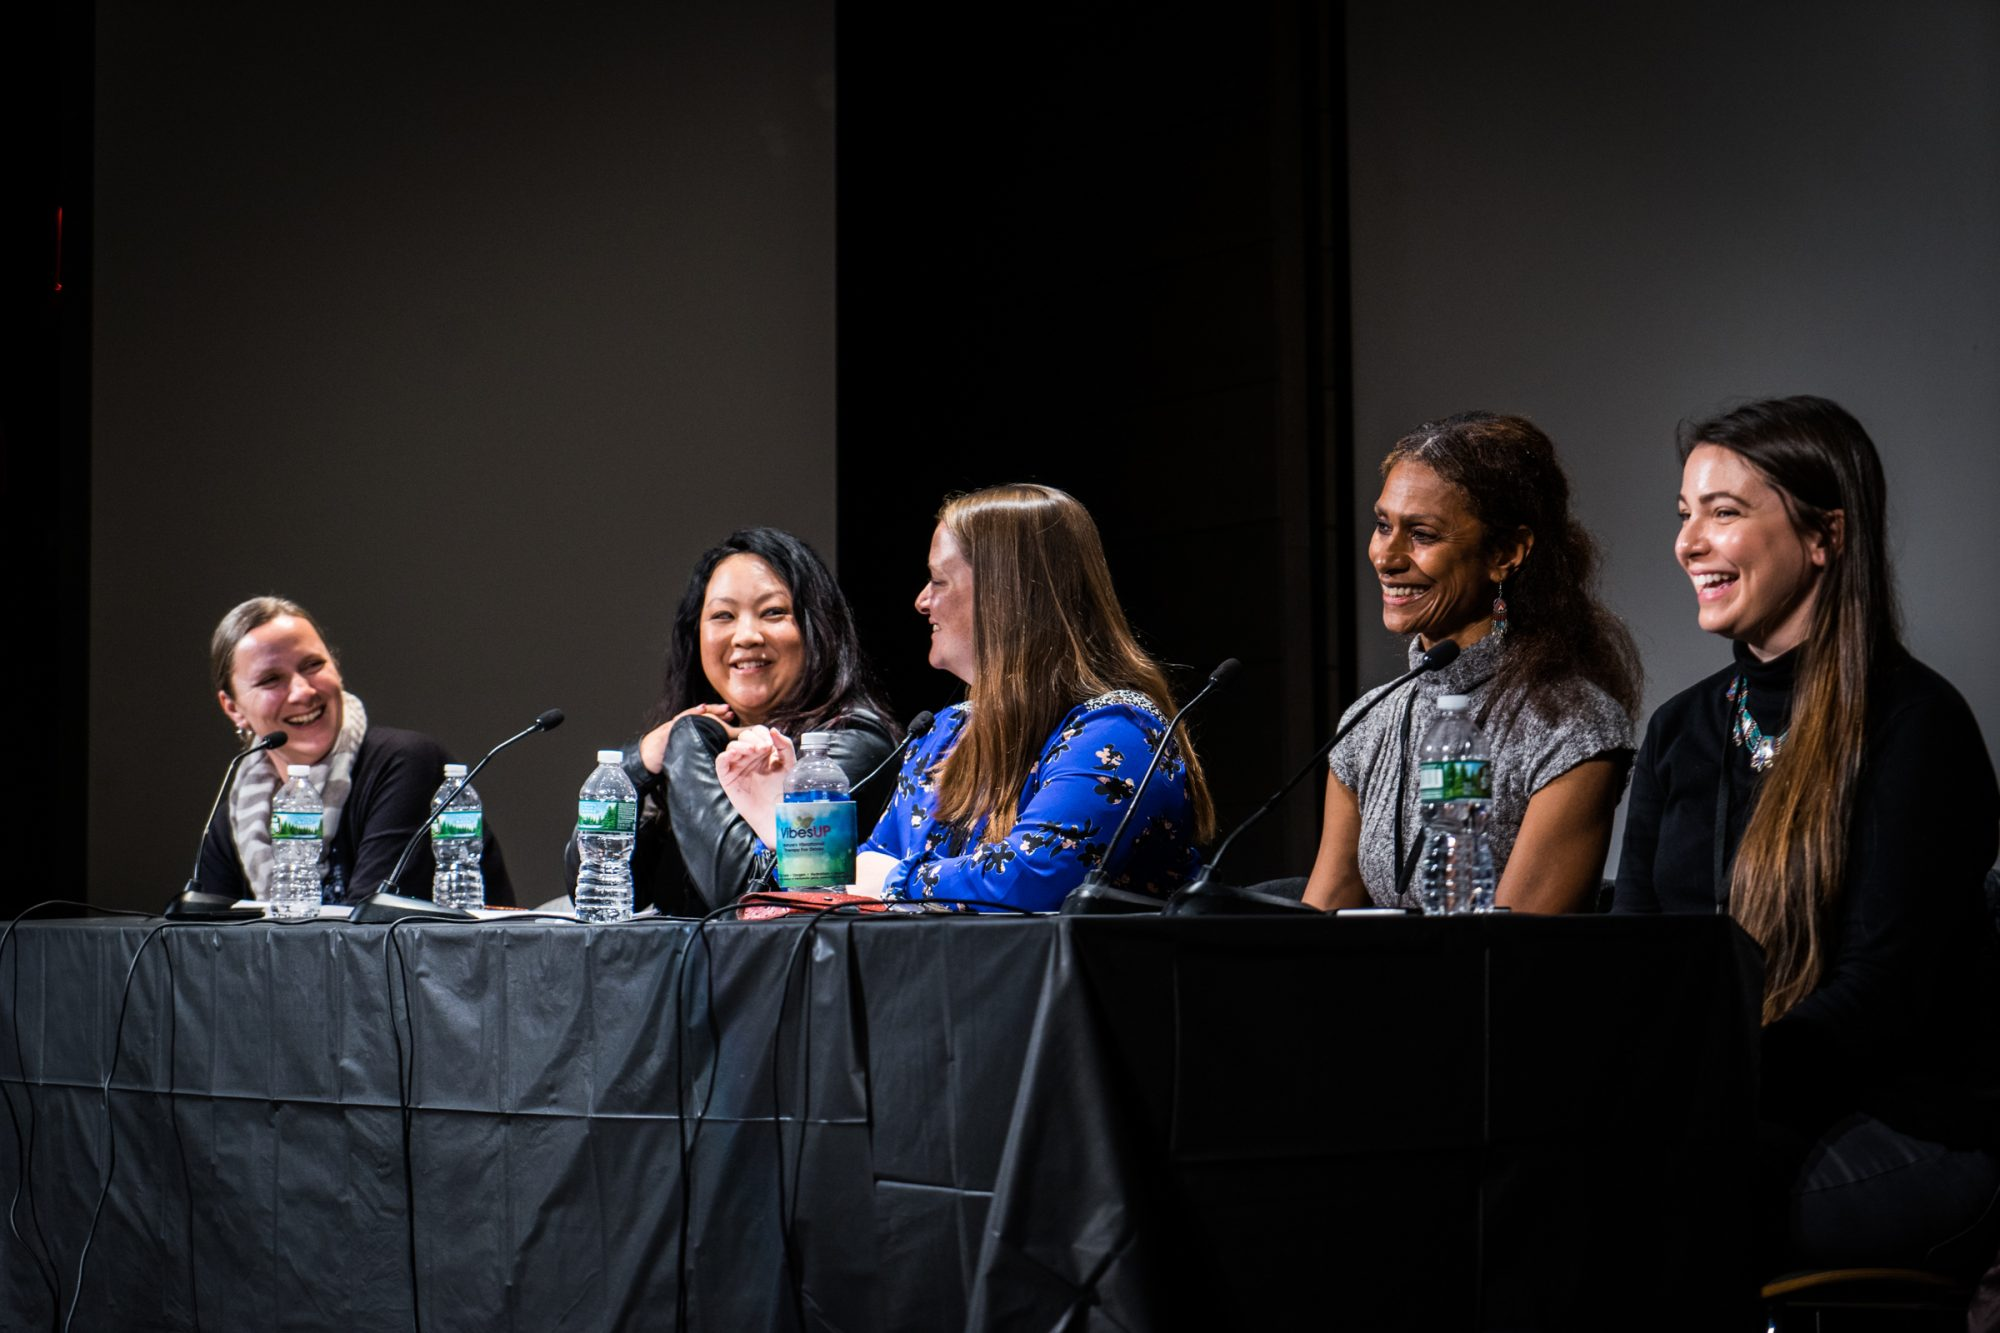 From left to right: Lori A. May, Leslie Hsu Oh, Meredith Bethune, Felice Neals, Hillary Richard